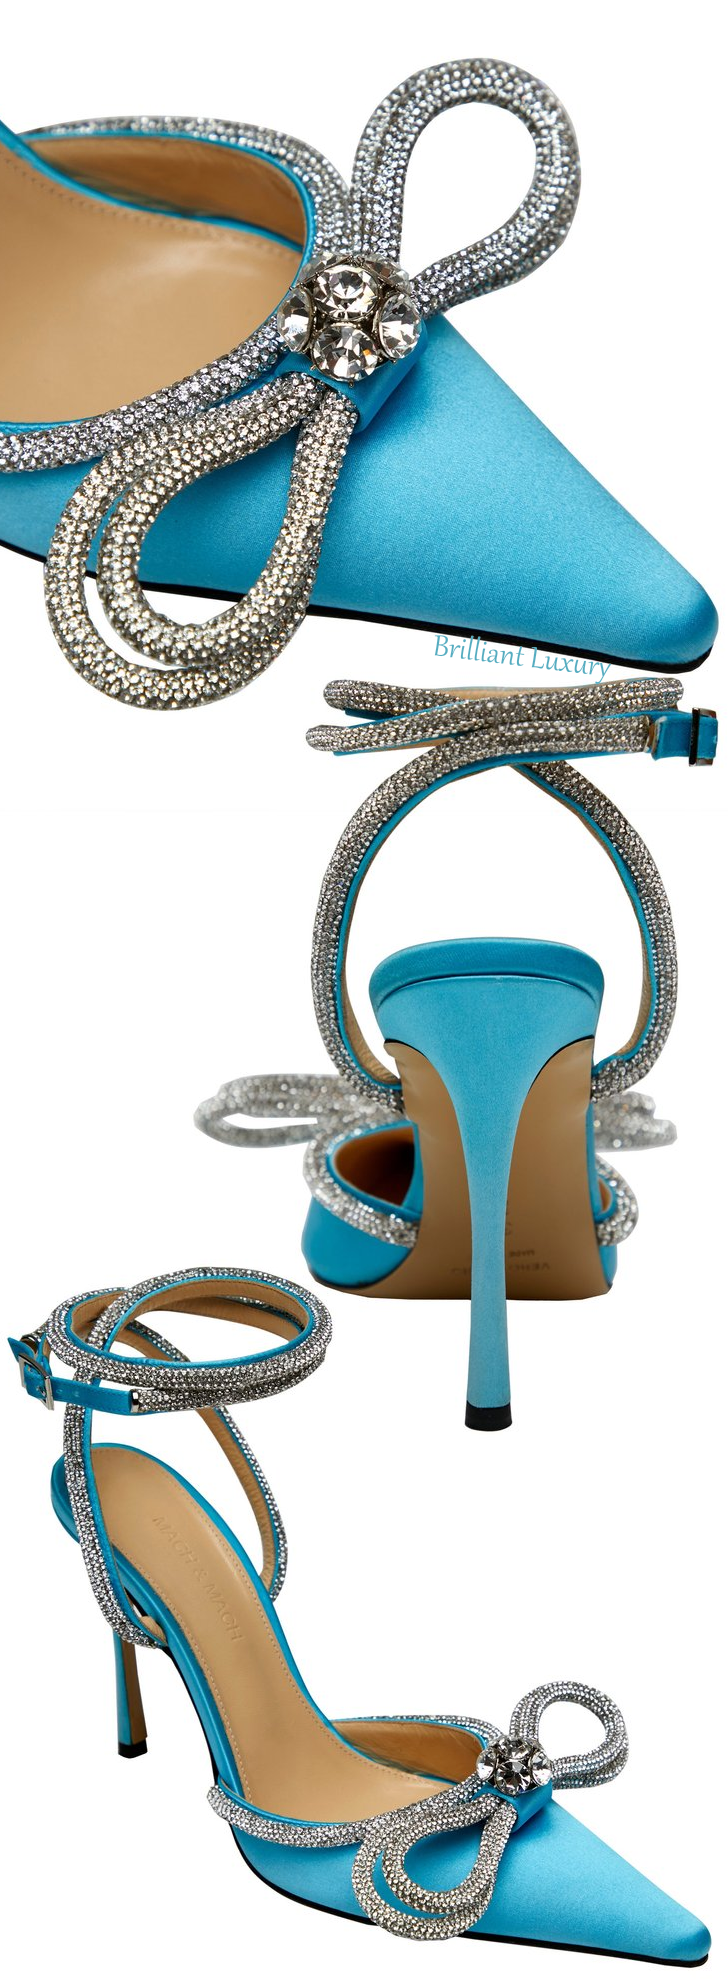 Mach & Mach turquoise blue crystal double bow pump colorful evening shoes #brilliantluxury